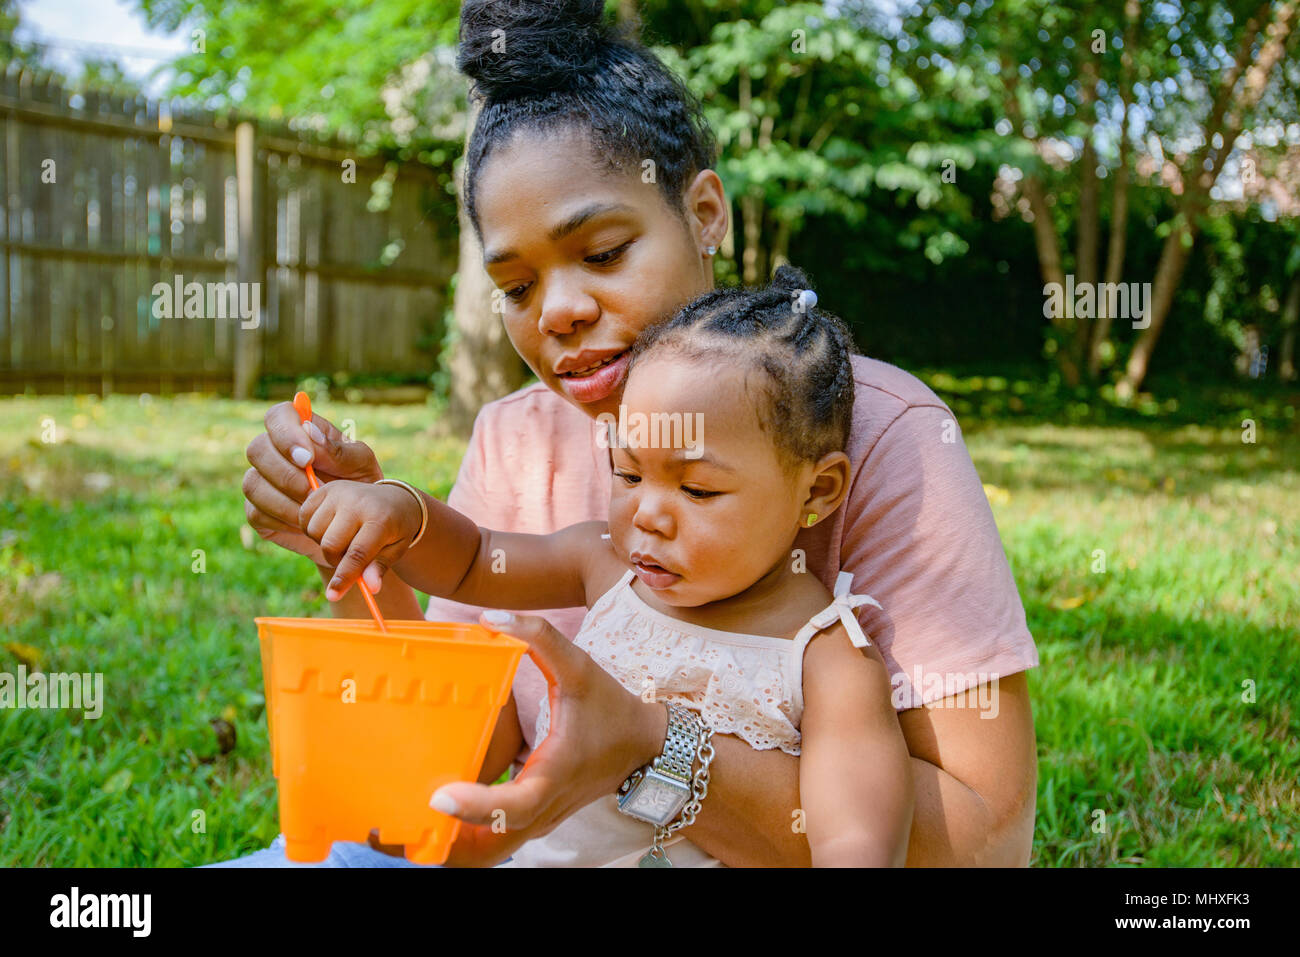 Mid adult woman playing with toy bucket in garden with baby daughter - Stock Image